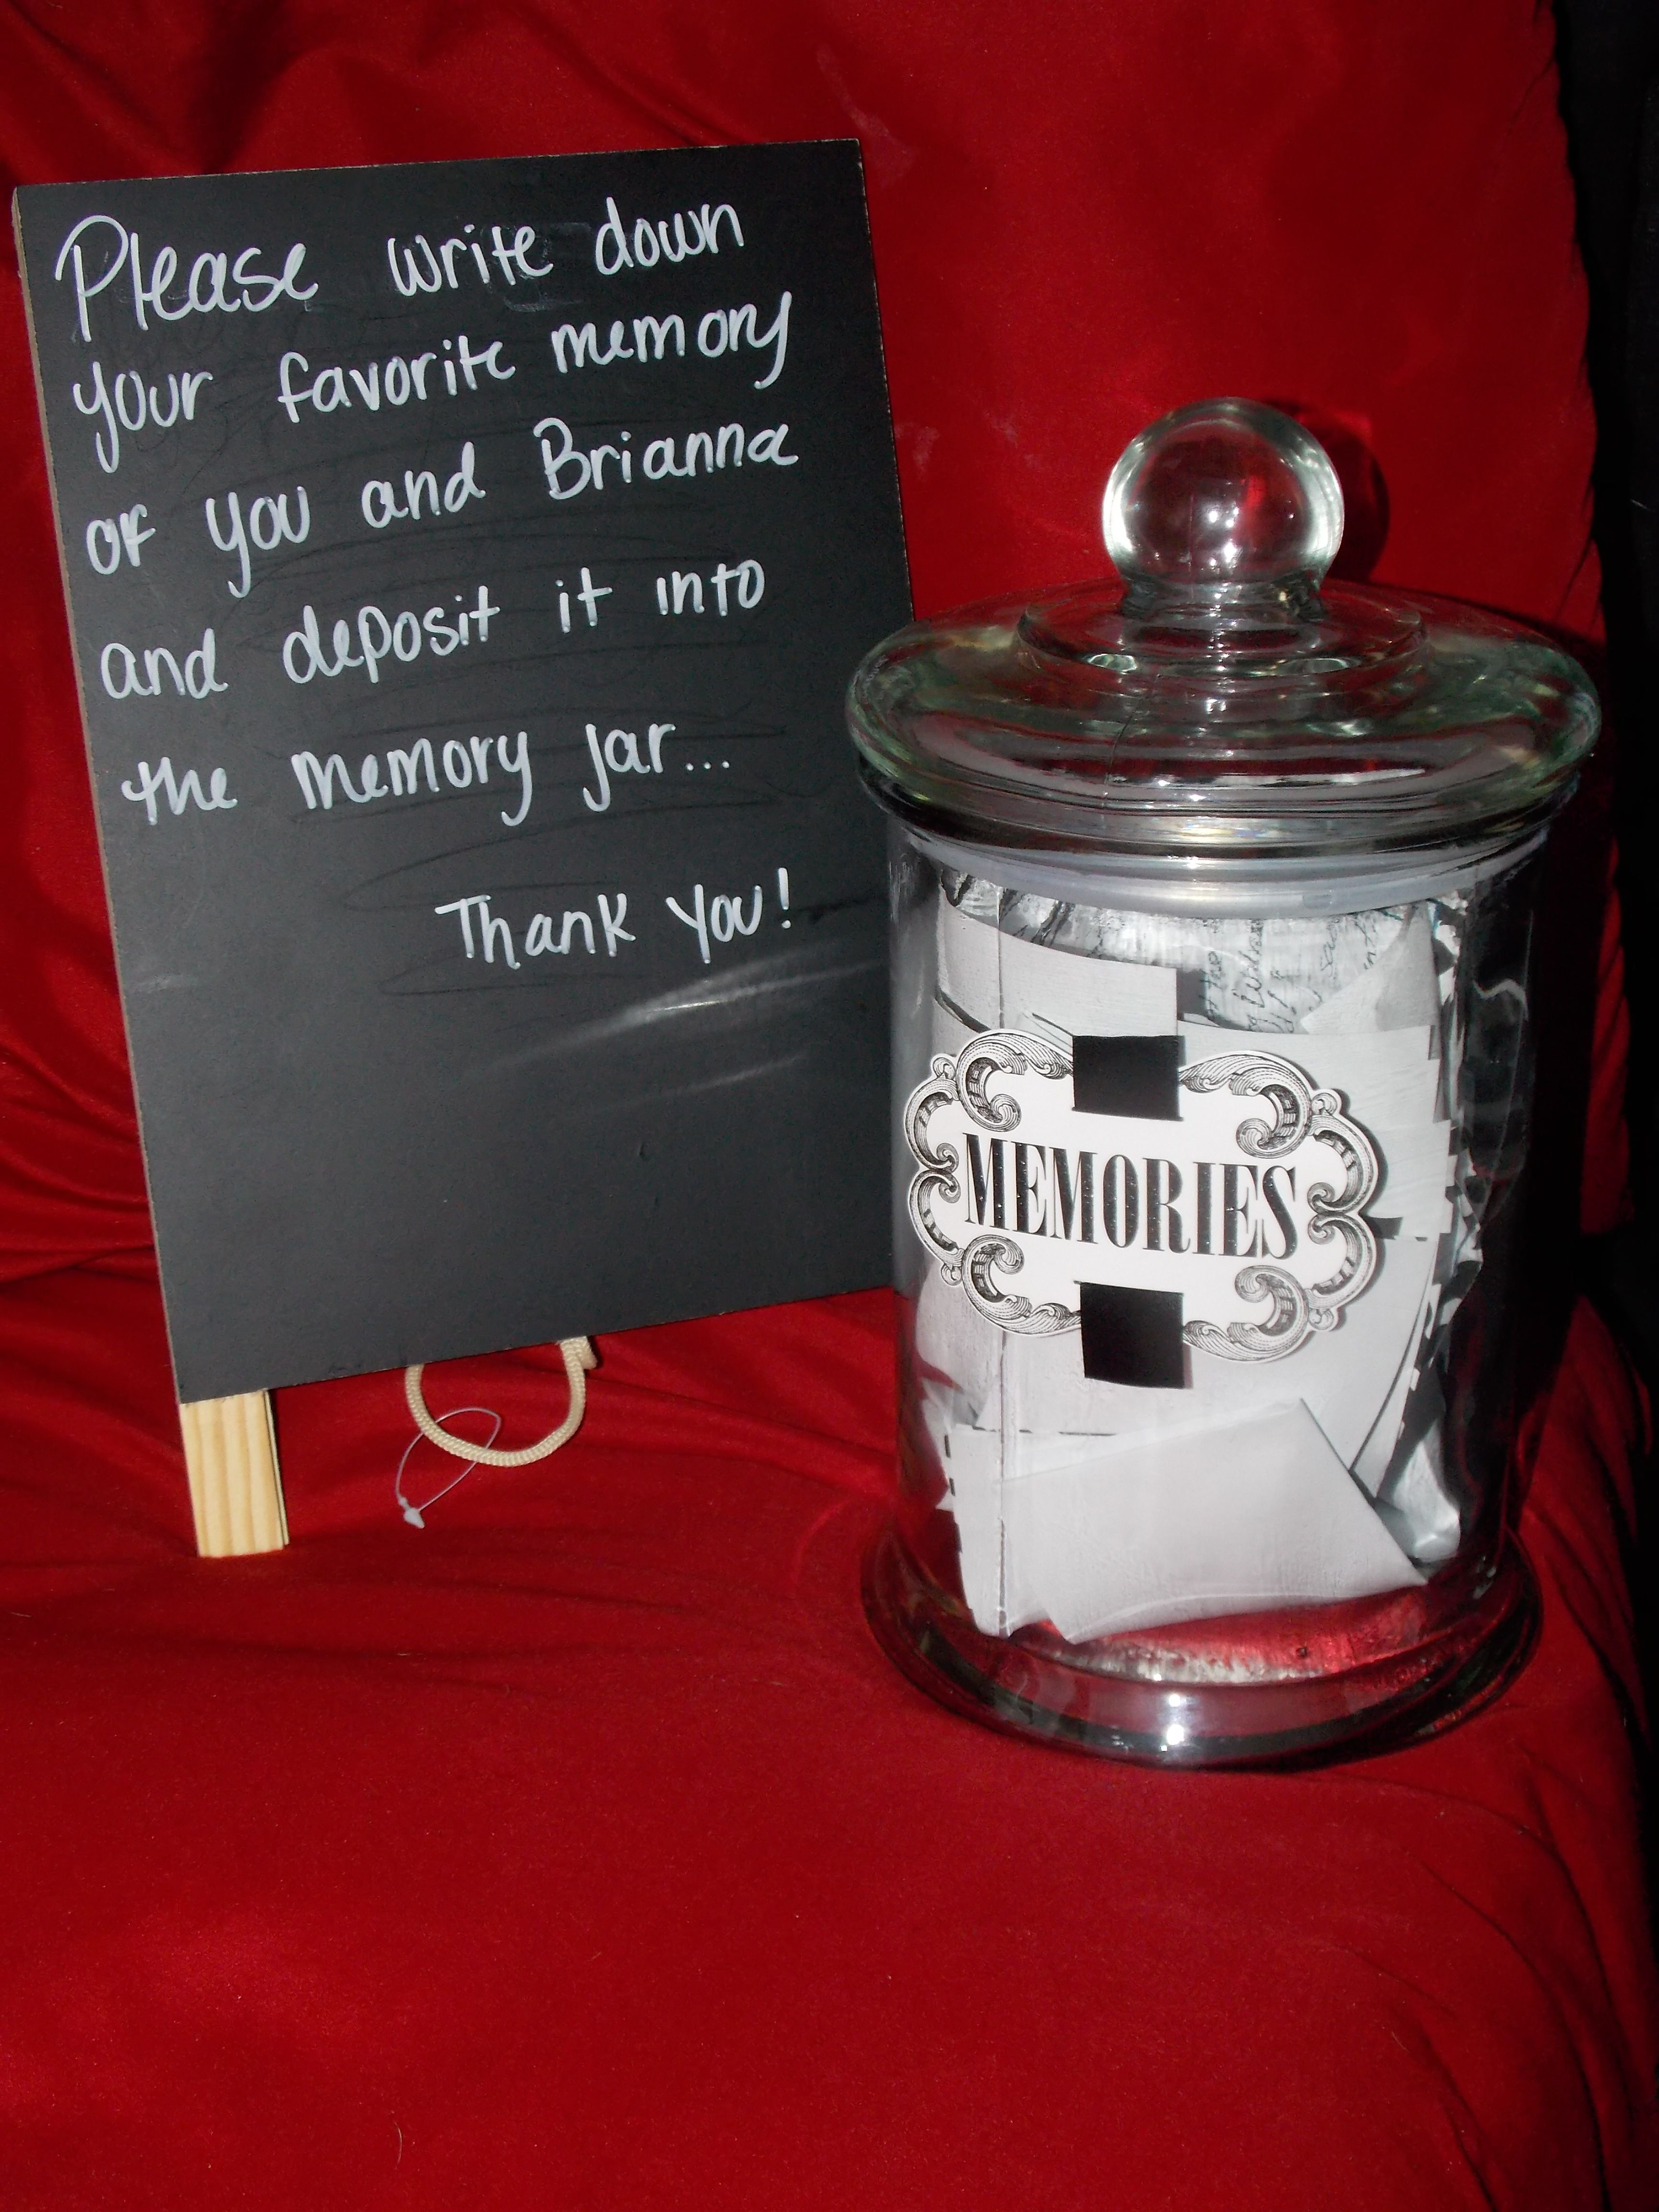 The Memory Jar My Mom Made For My Graduation Party Everyone Put There Favorite Memory Of Me Graduation Party High Graduation Party Senior Graduation Party